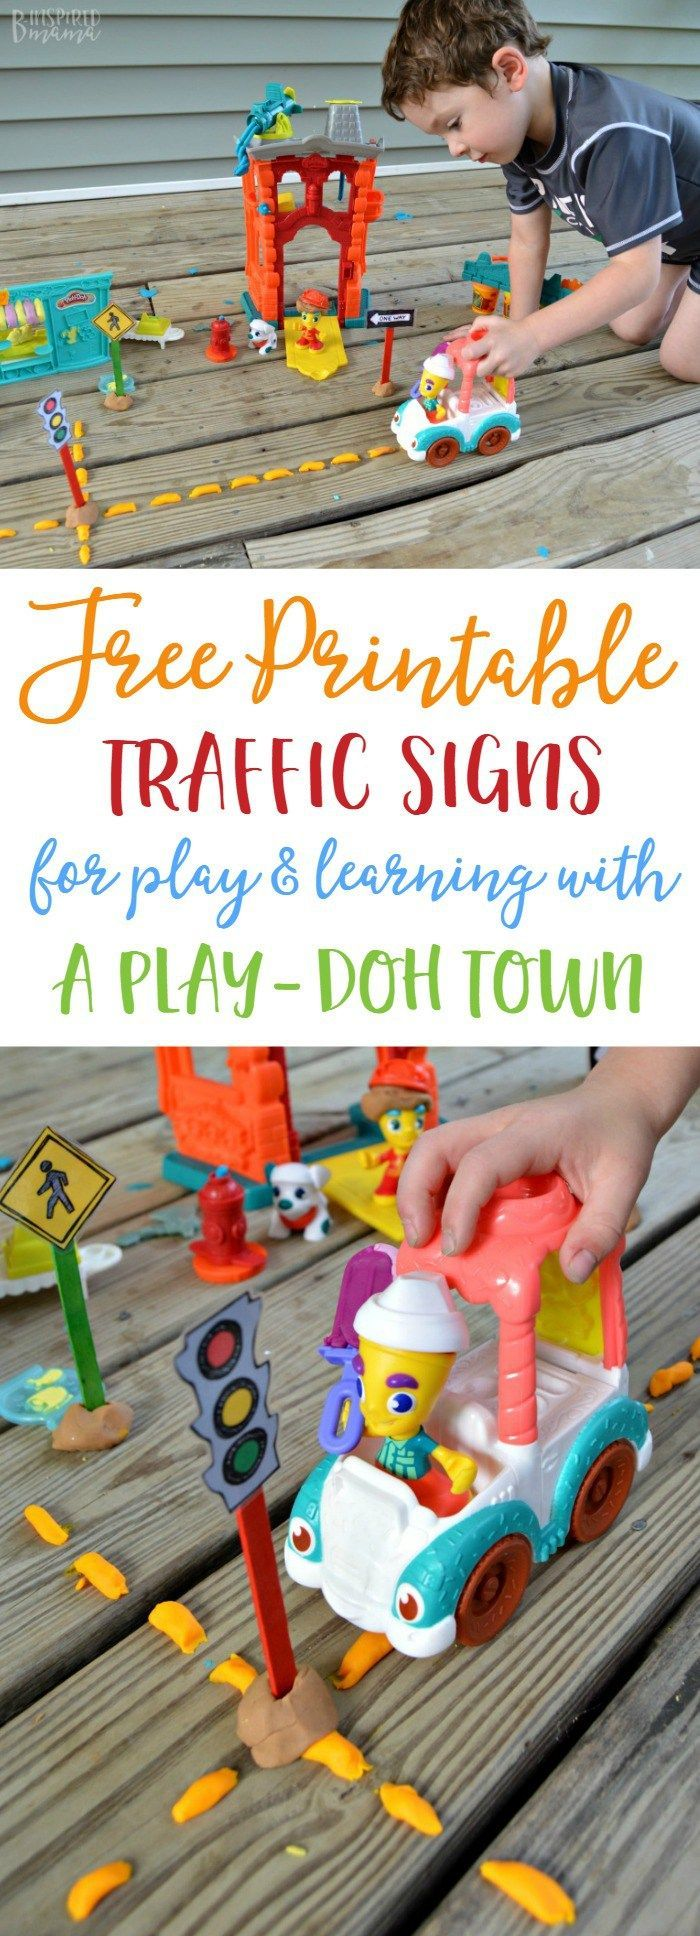 167 best transportation theme weekly home preschool images on